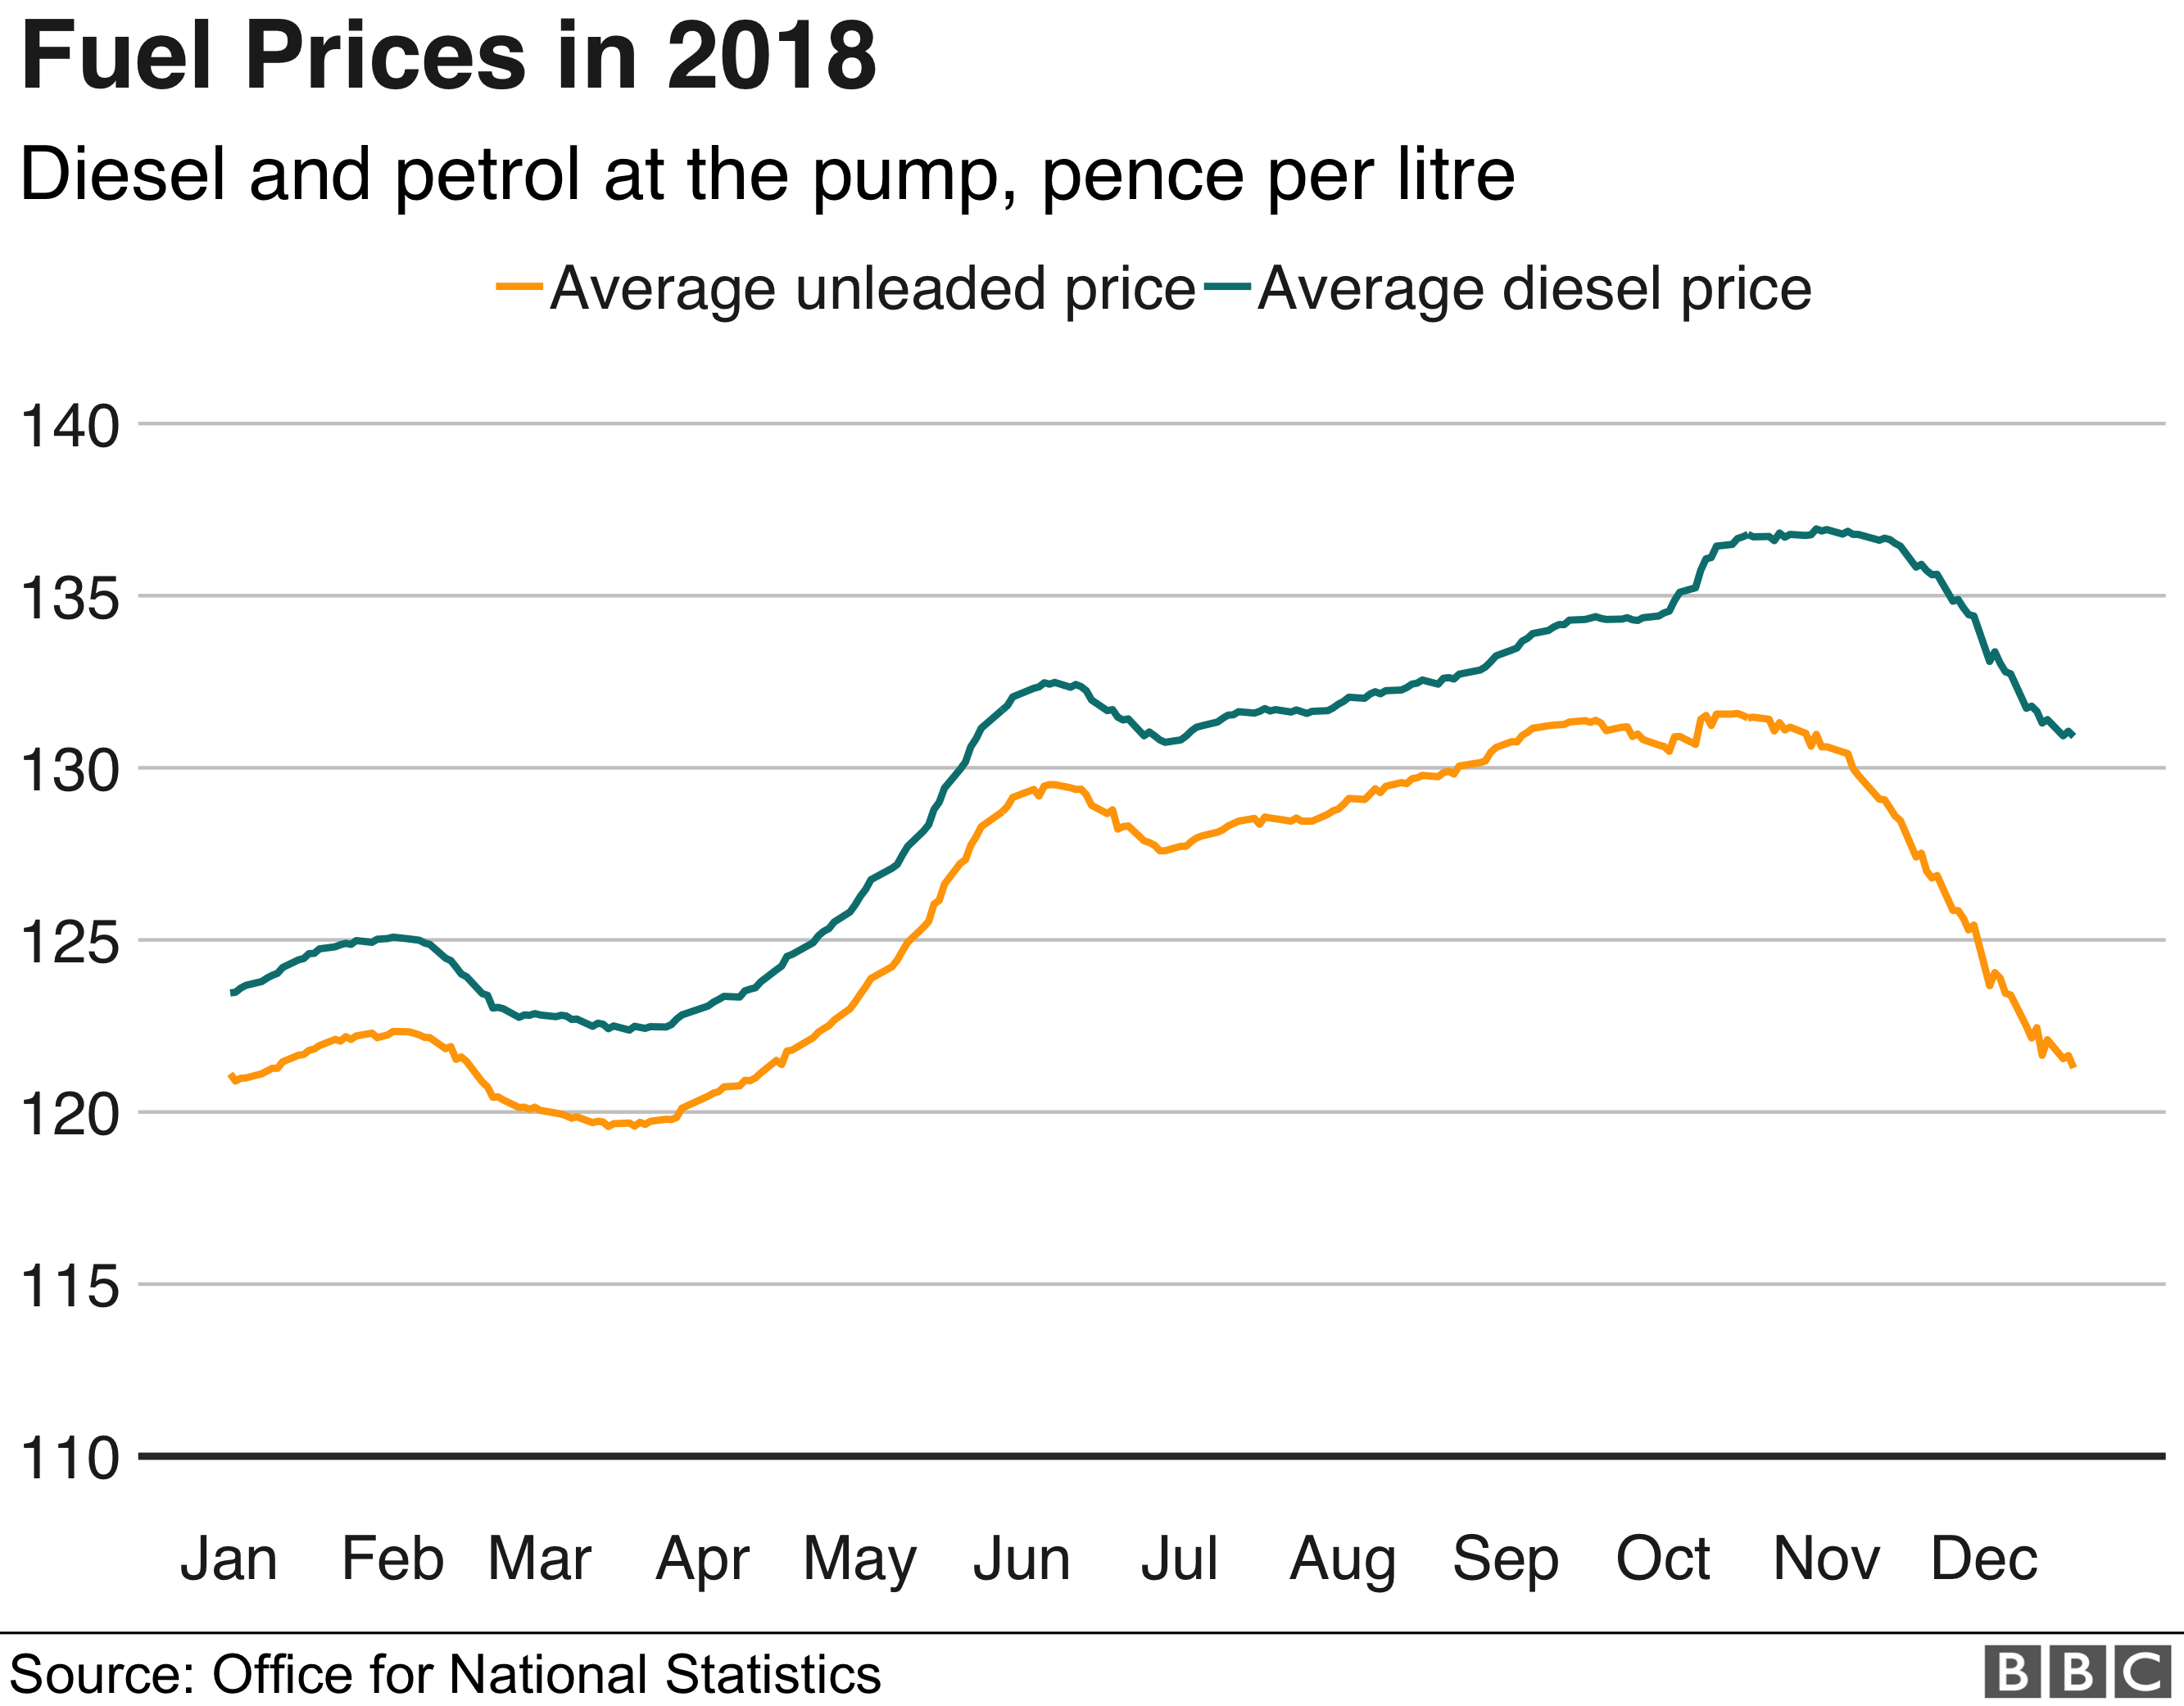 Fuel Prices in 2018